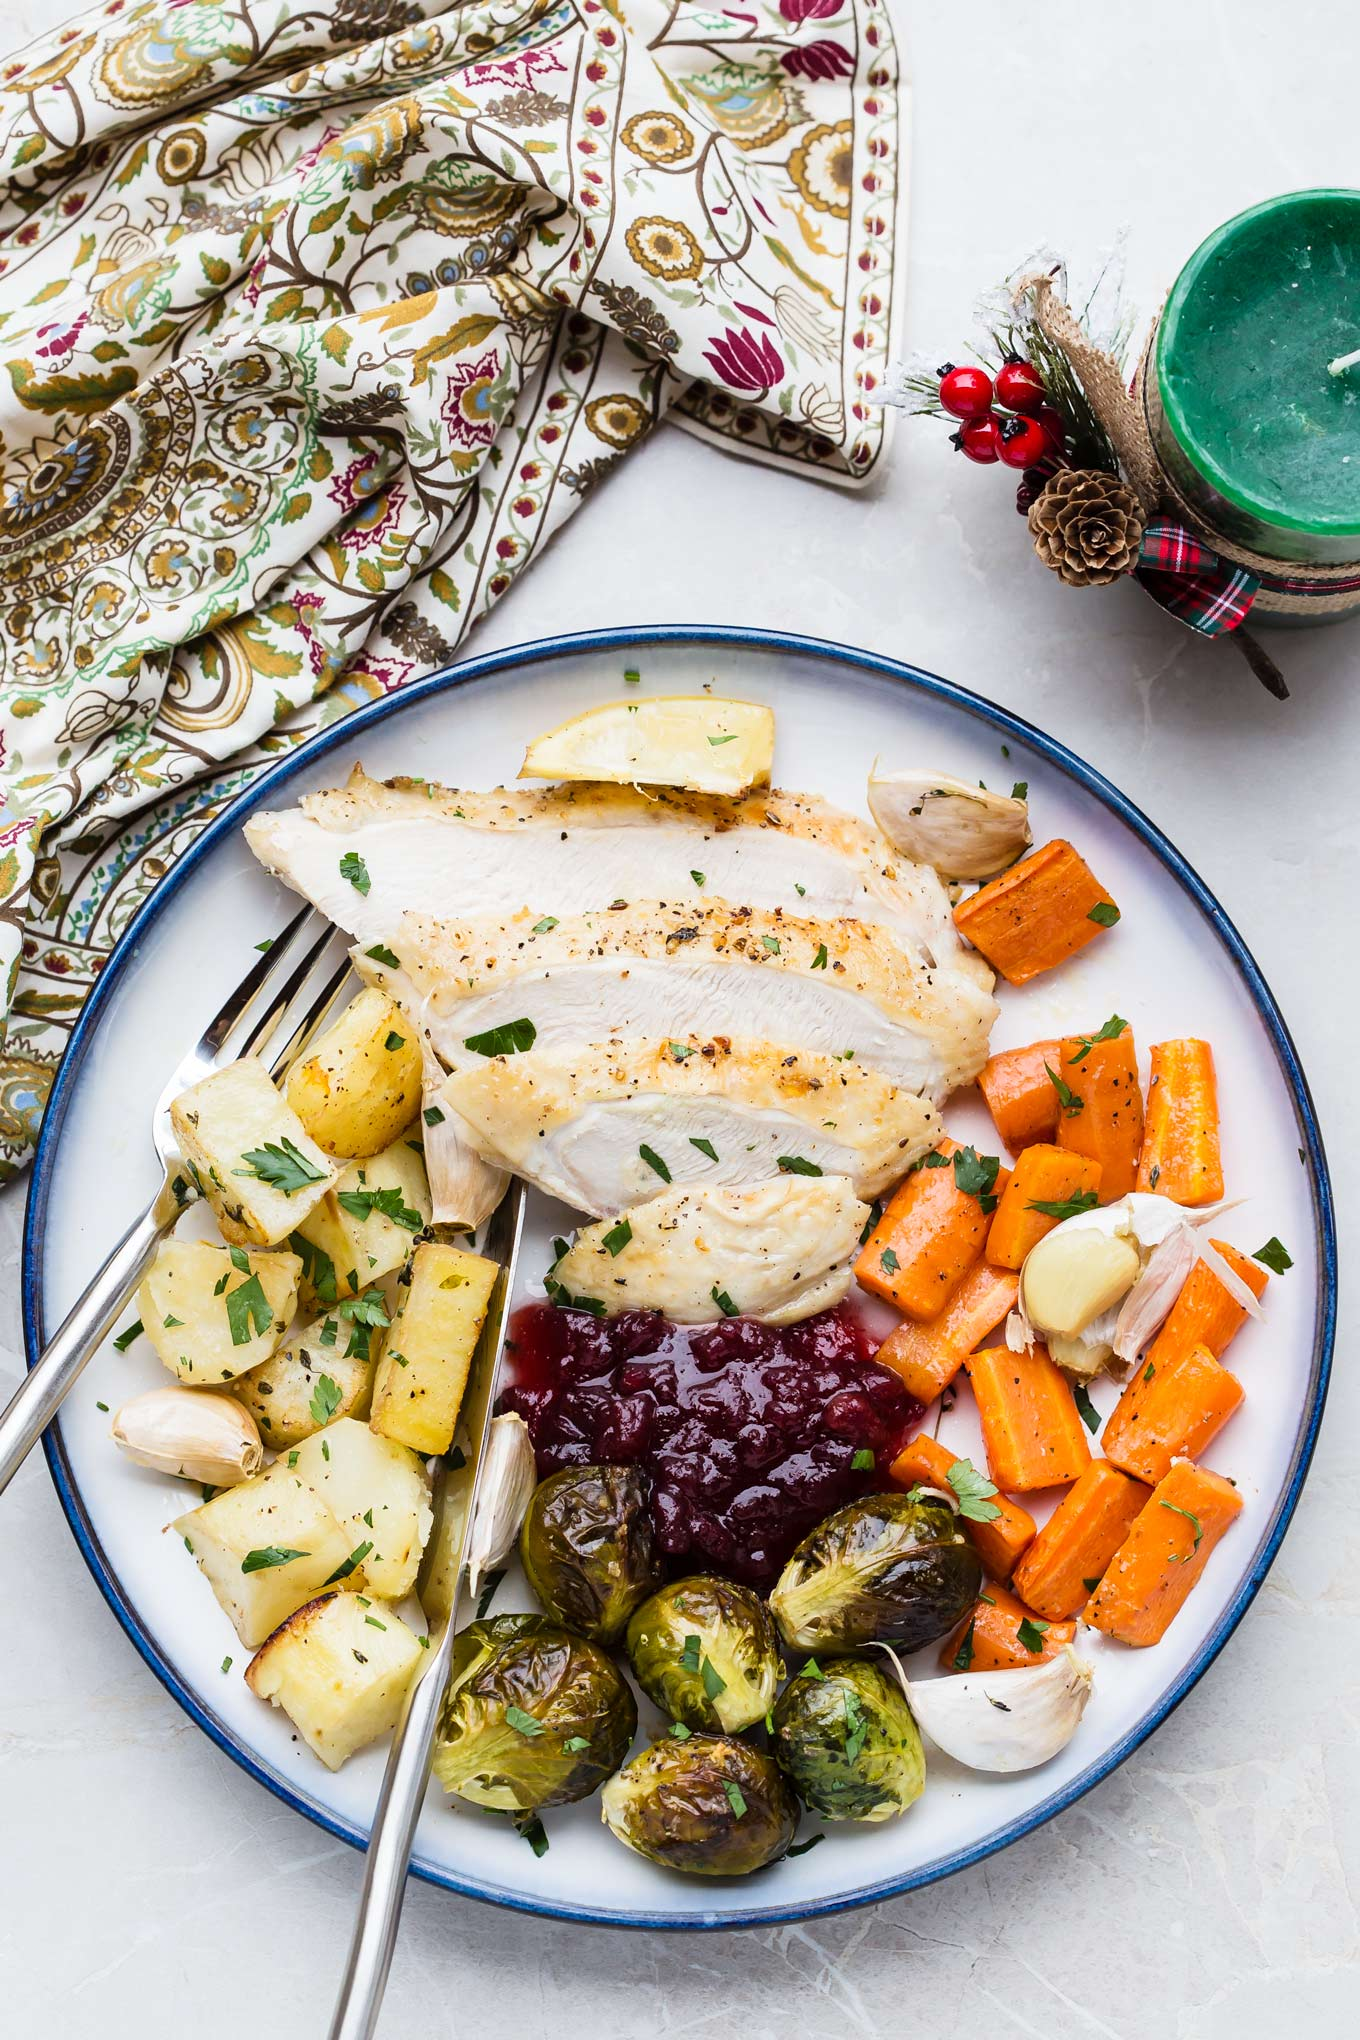 One Pan Turkey Roast Dinner for two - easy, traditional Christmas meal recipe ready in 1 hour.